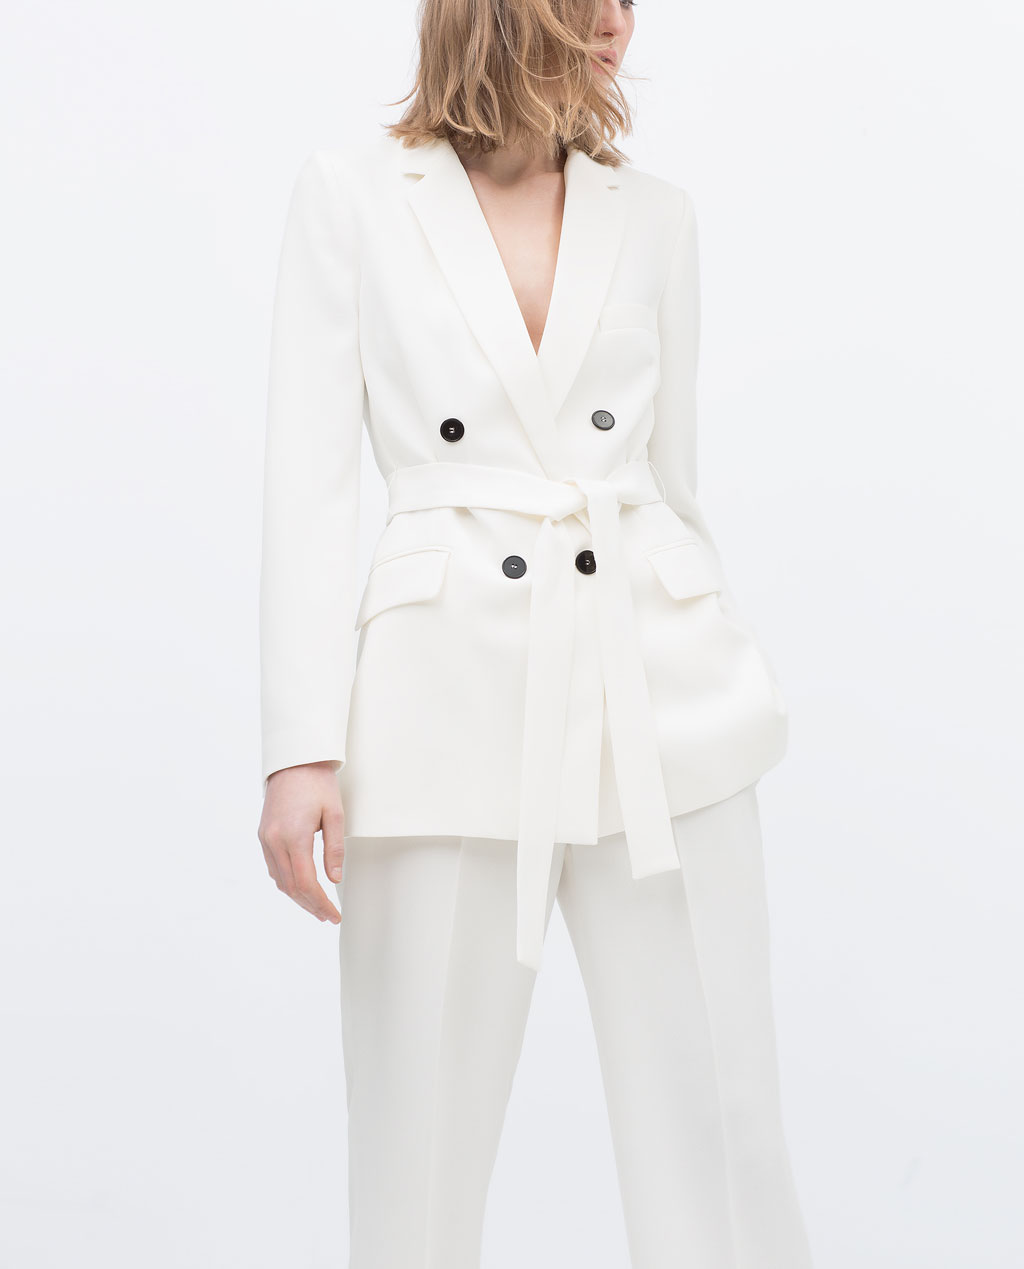 c1388ad710a9 I have been lusting over this Zara belted blazer from the very moment I  laid eyes on it. Despite the love at first sight attraction, i found it  difficult to ...